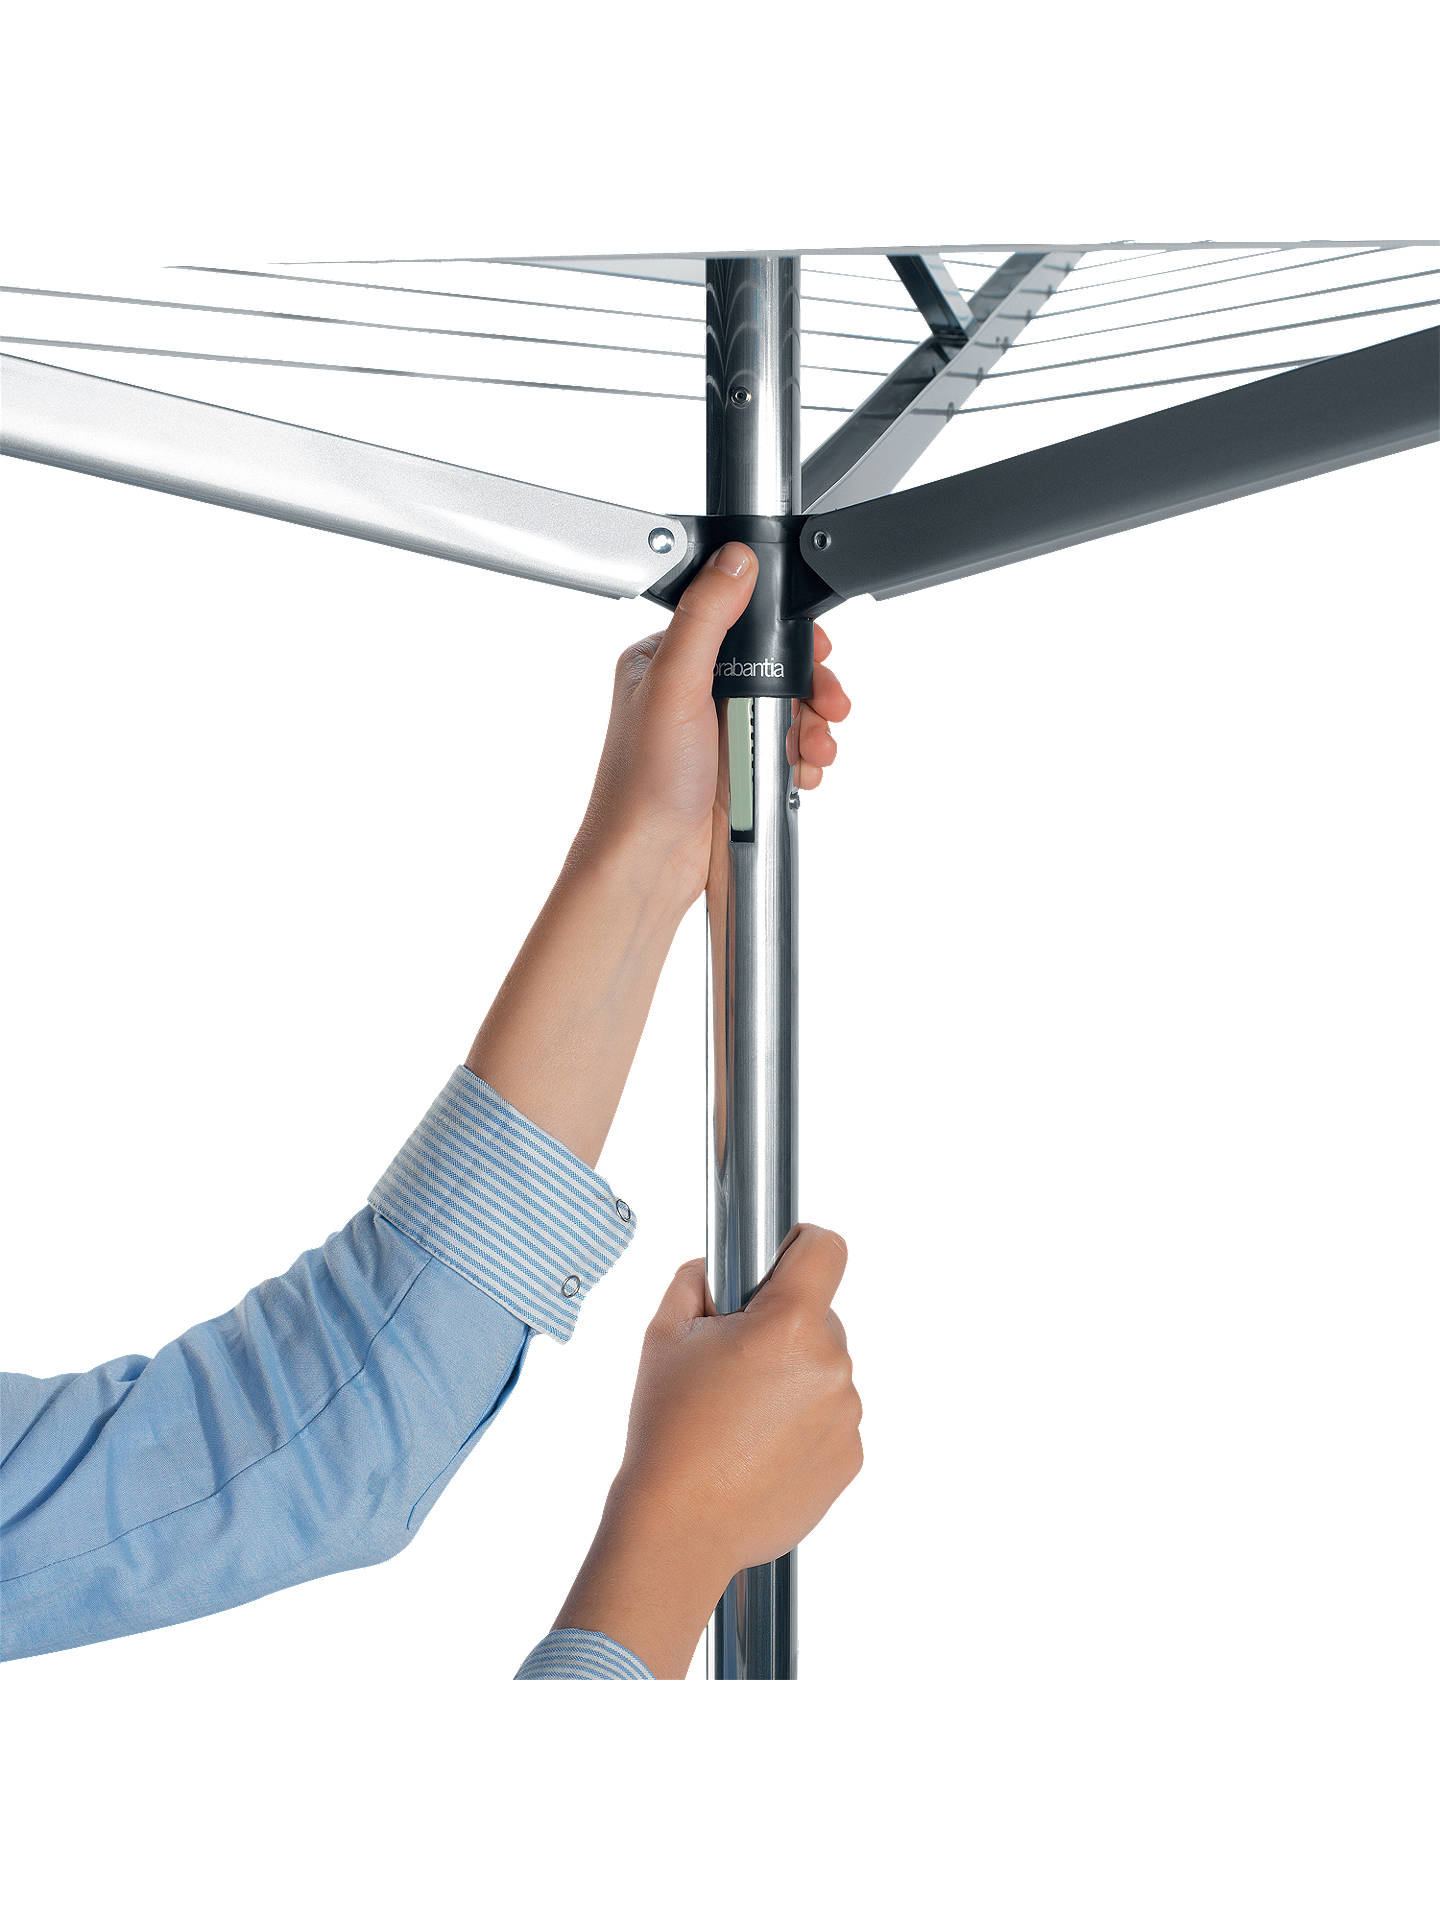 BuyBrabantia Compact Rotary Clothes Outdoor Airer Washing Line, 30m Online at johnlewis.com